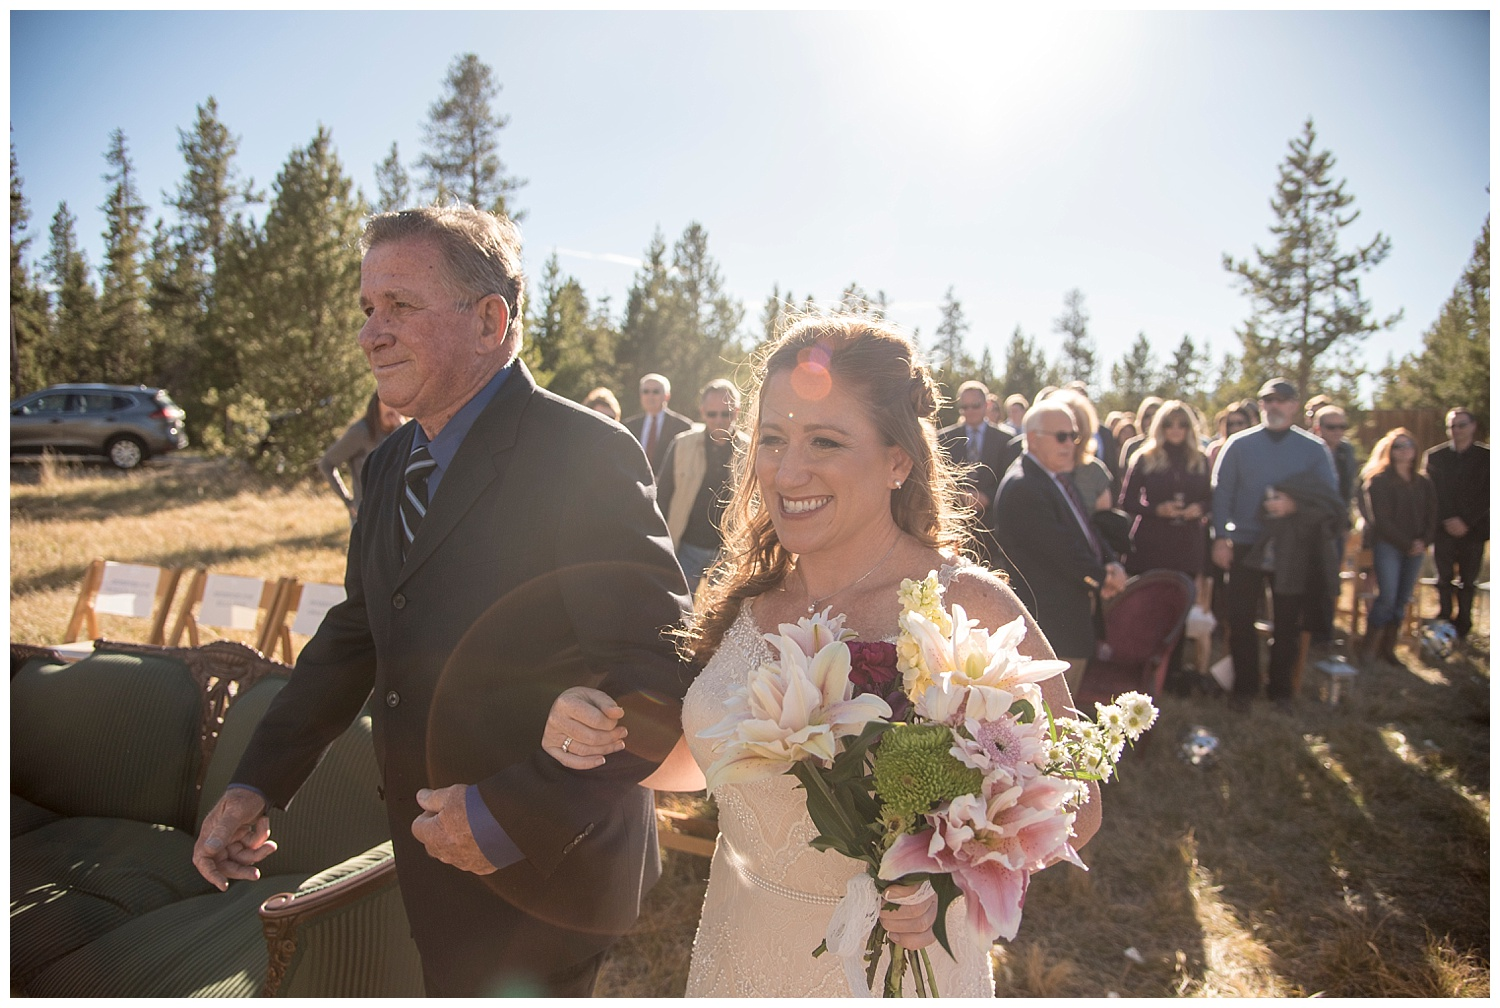 Walking Down the Aisle | Carolyn and Shawn's Wild Horse Inn Wedding at Devil's Thumb Ranch | Fraser Colorado Photography | Farm Wedding Photographer | Apollo Fields Wedding Photojournalism